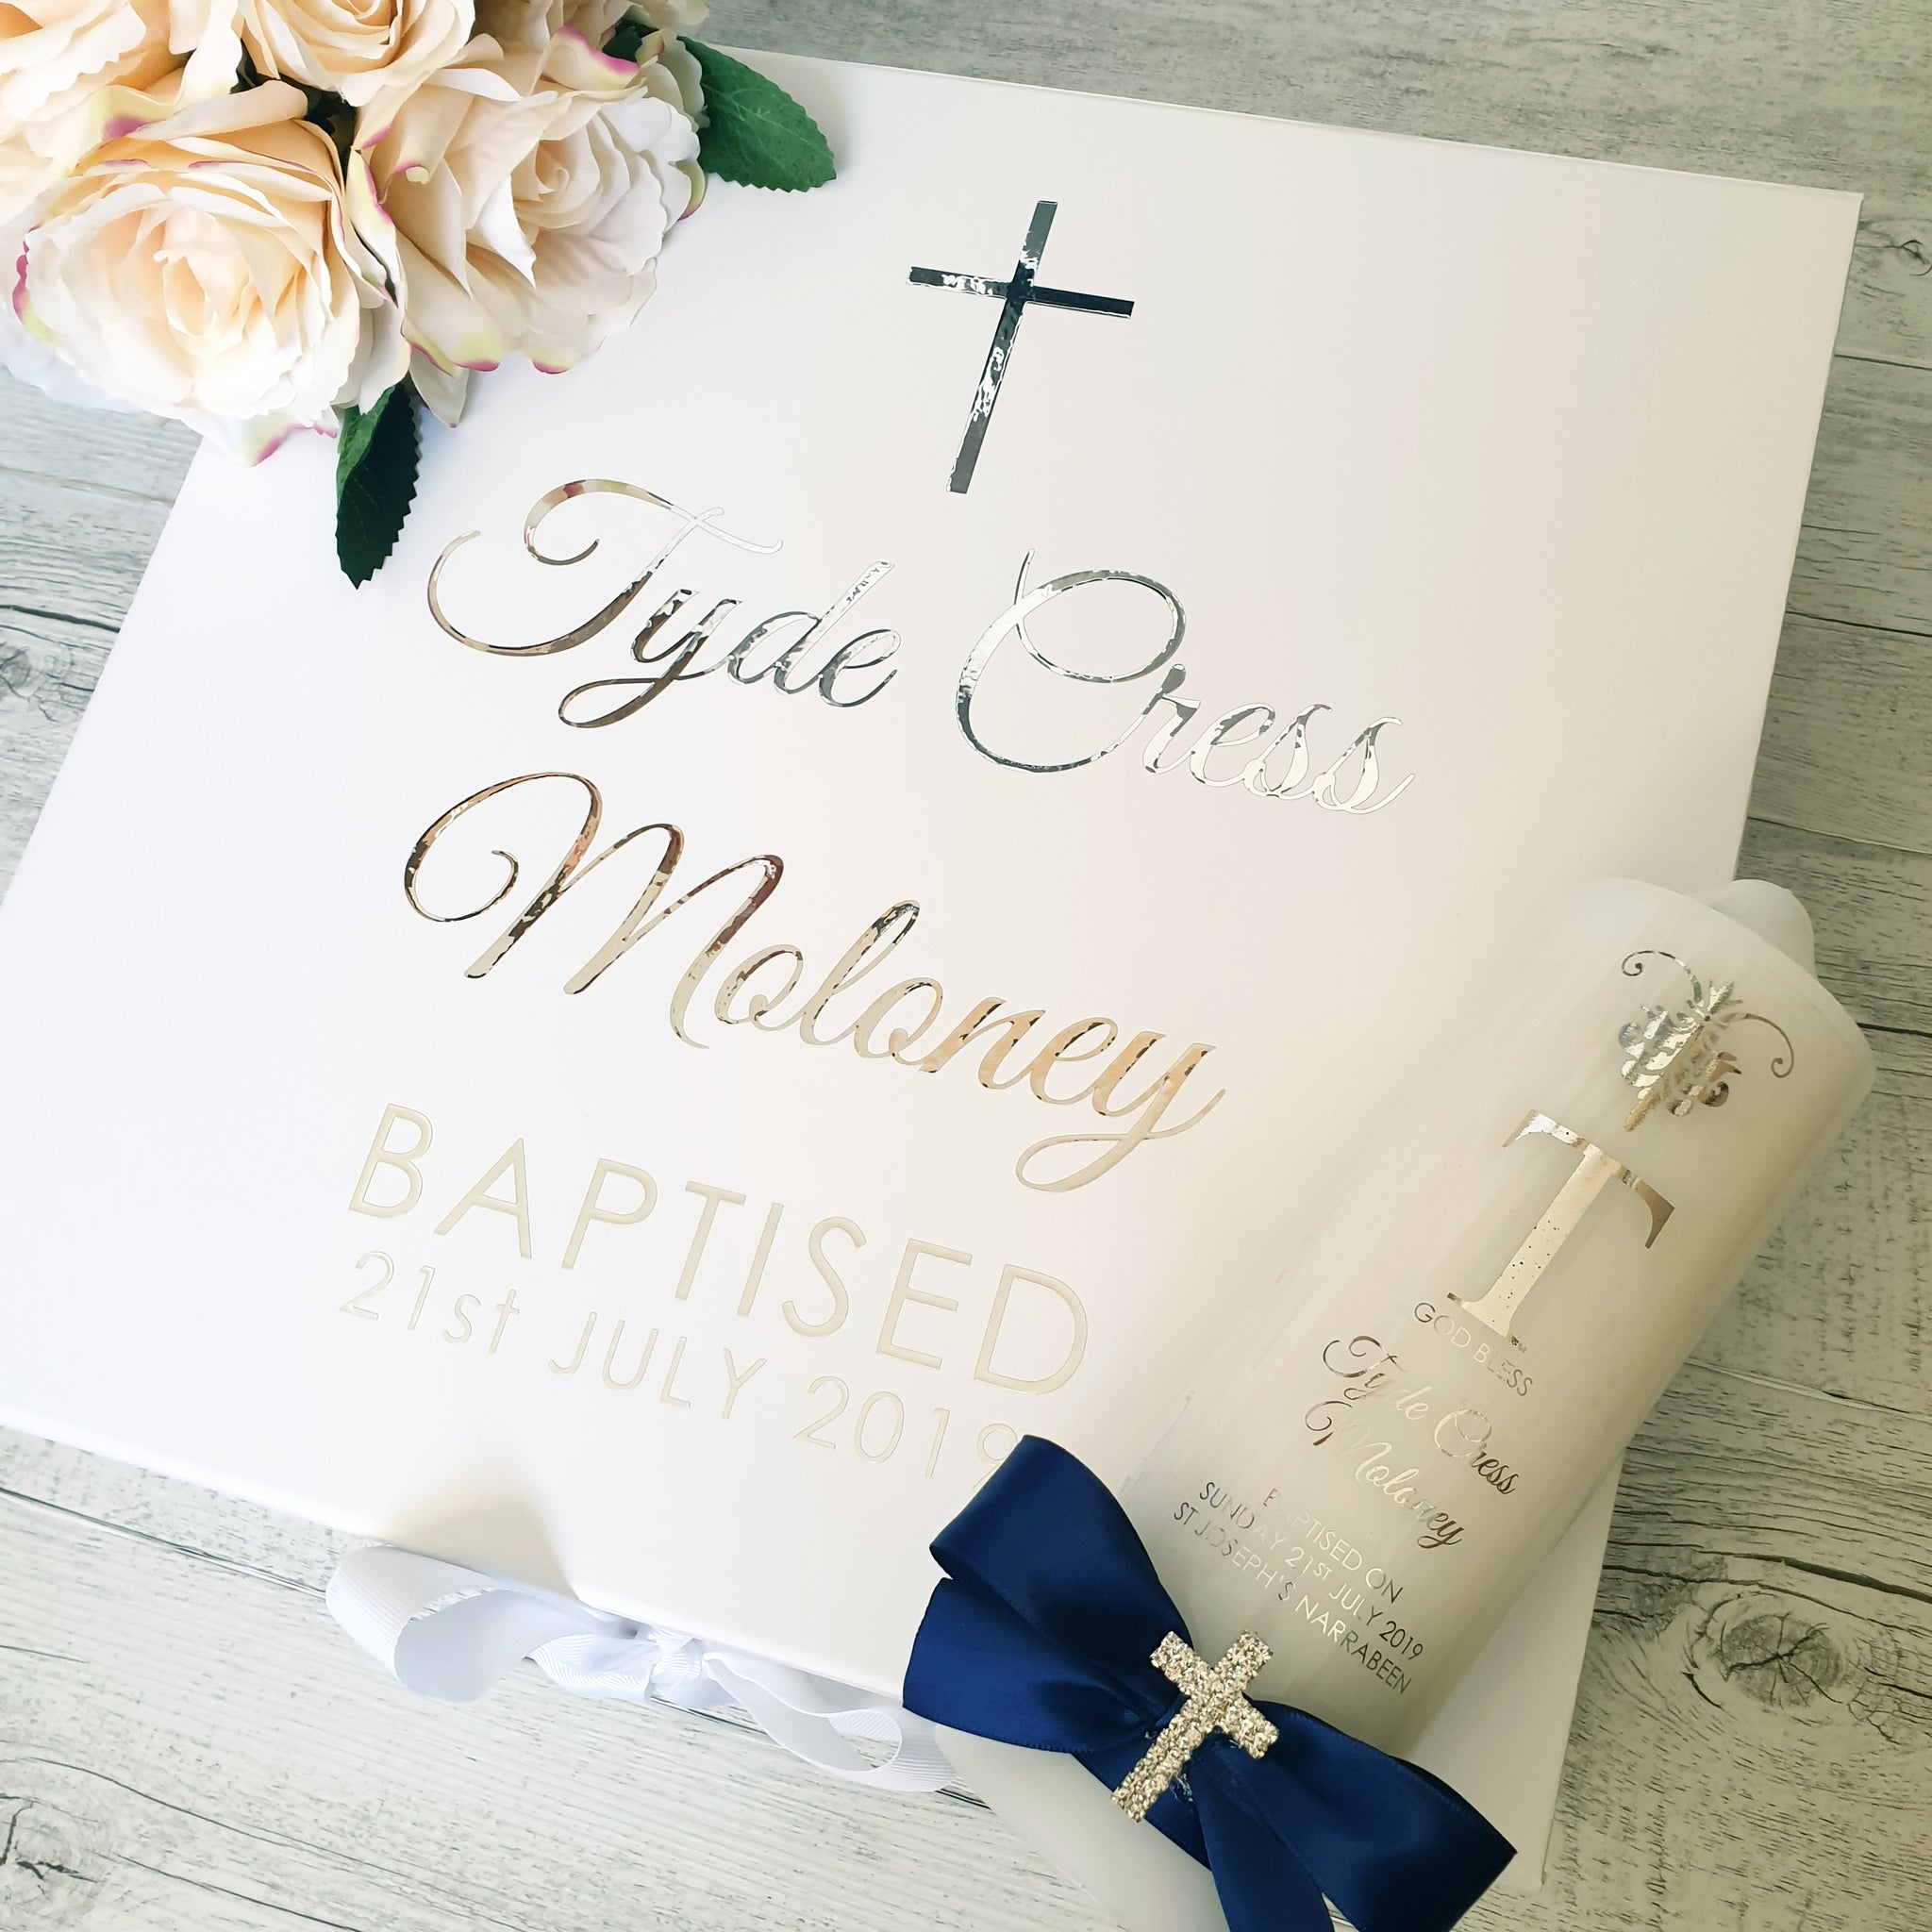 Christening / Baptism Gift Boxes - Deluxe